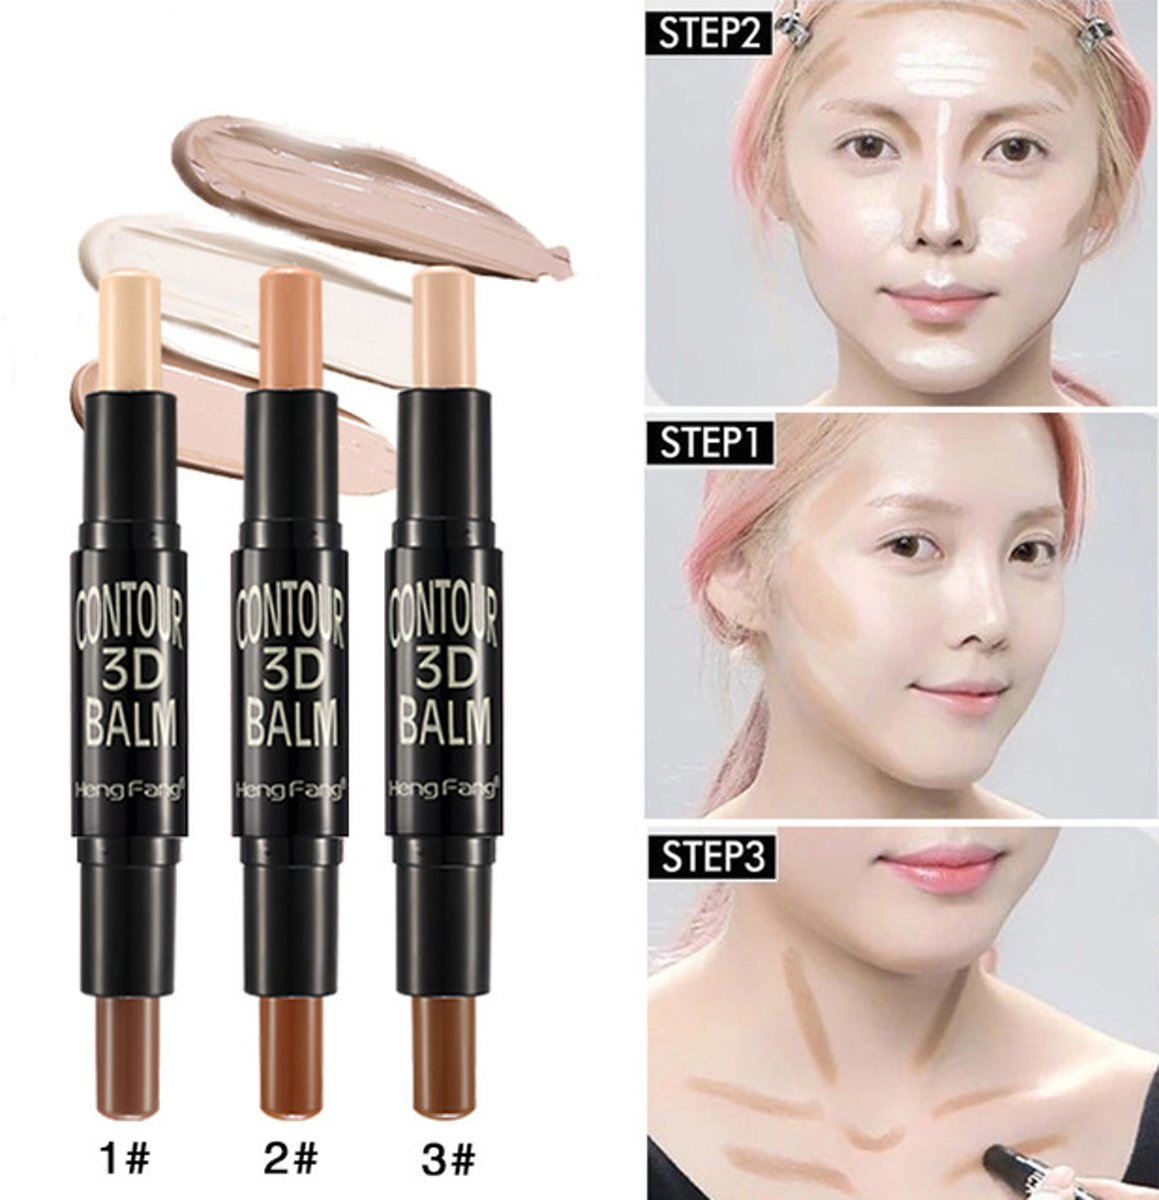 2-In-1 Contour Pen Stick 3D Concealer Highlighter Double Professional Wonder Stick Kleur 2 Ivoorwit+Lichte Koffie